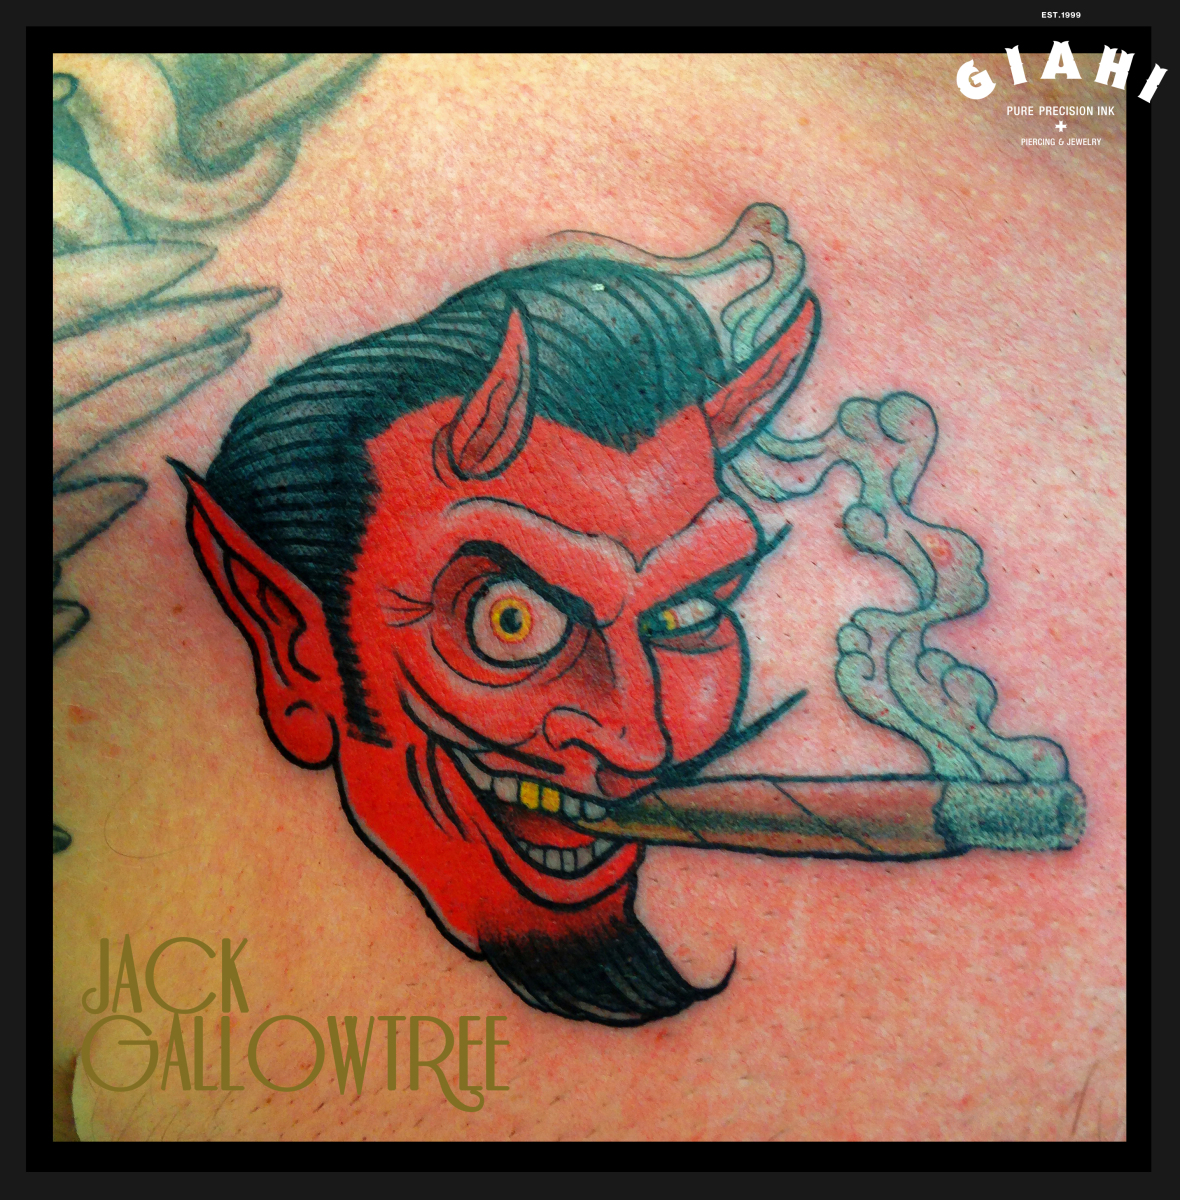 smoking devil tattoo by jack gallowtree best tattoo ideas gallery. Black Bedroom Furniture Sets. Home Design Ideas